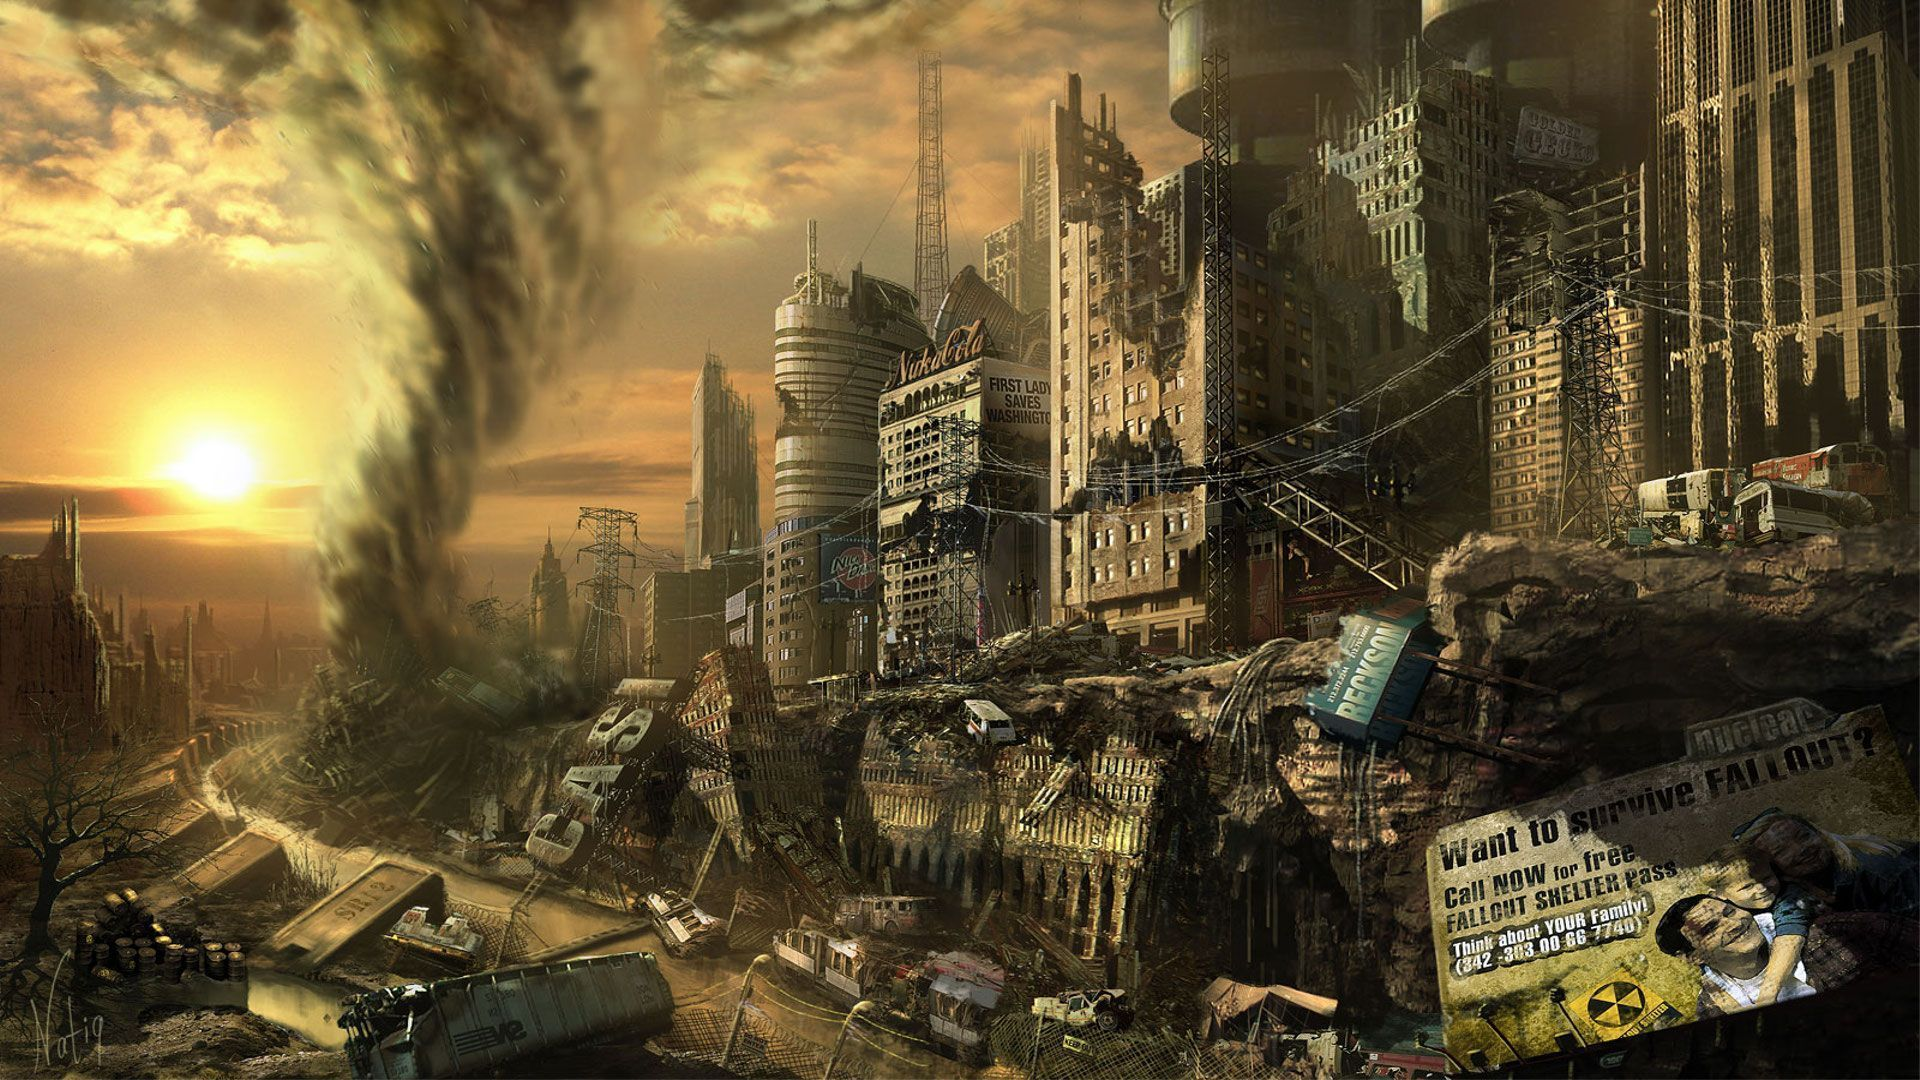 Fallout 3 Wallpapers High Definition Fallout Wallpaper Fallout New Vegas Fallout 3 Wallpaper